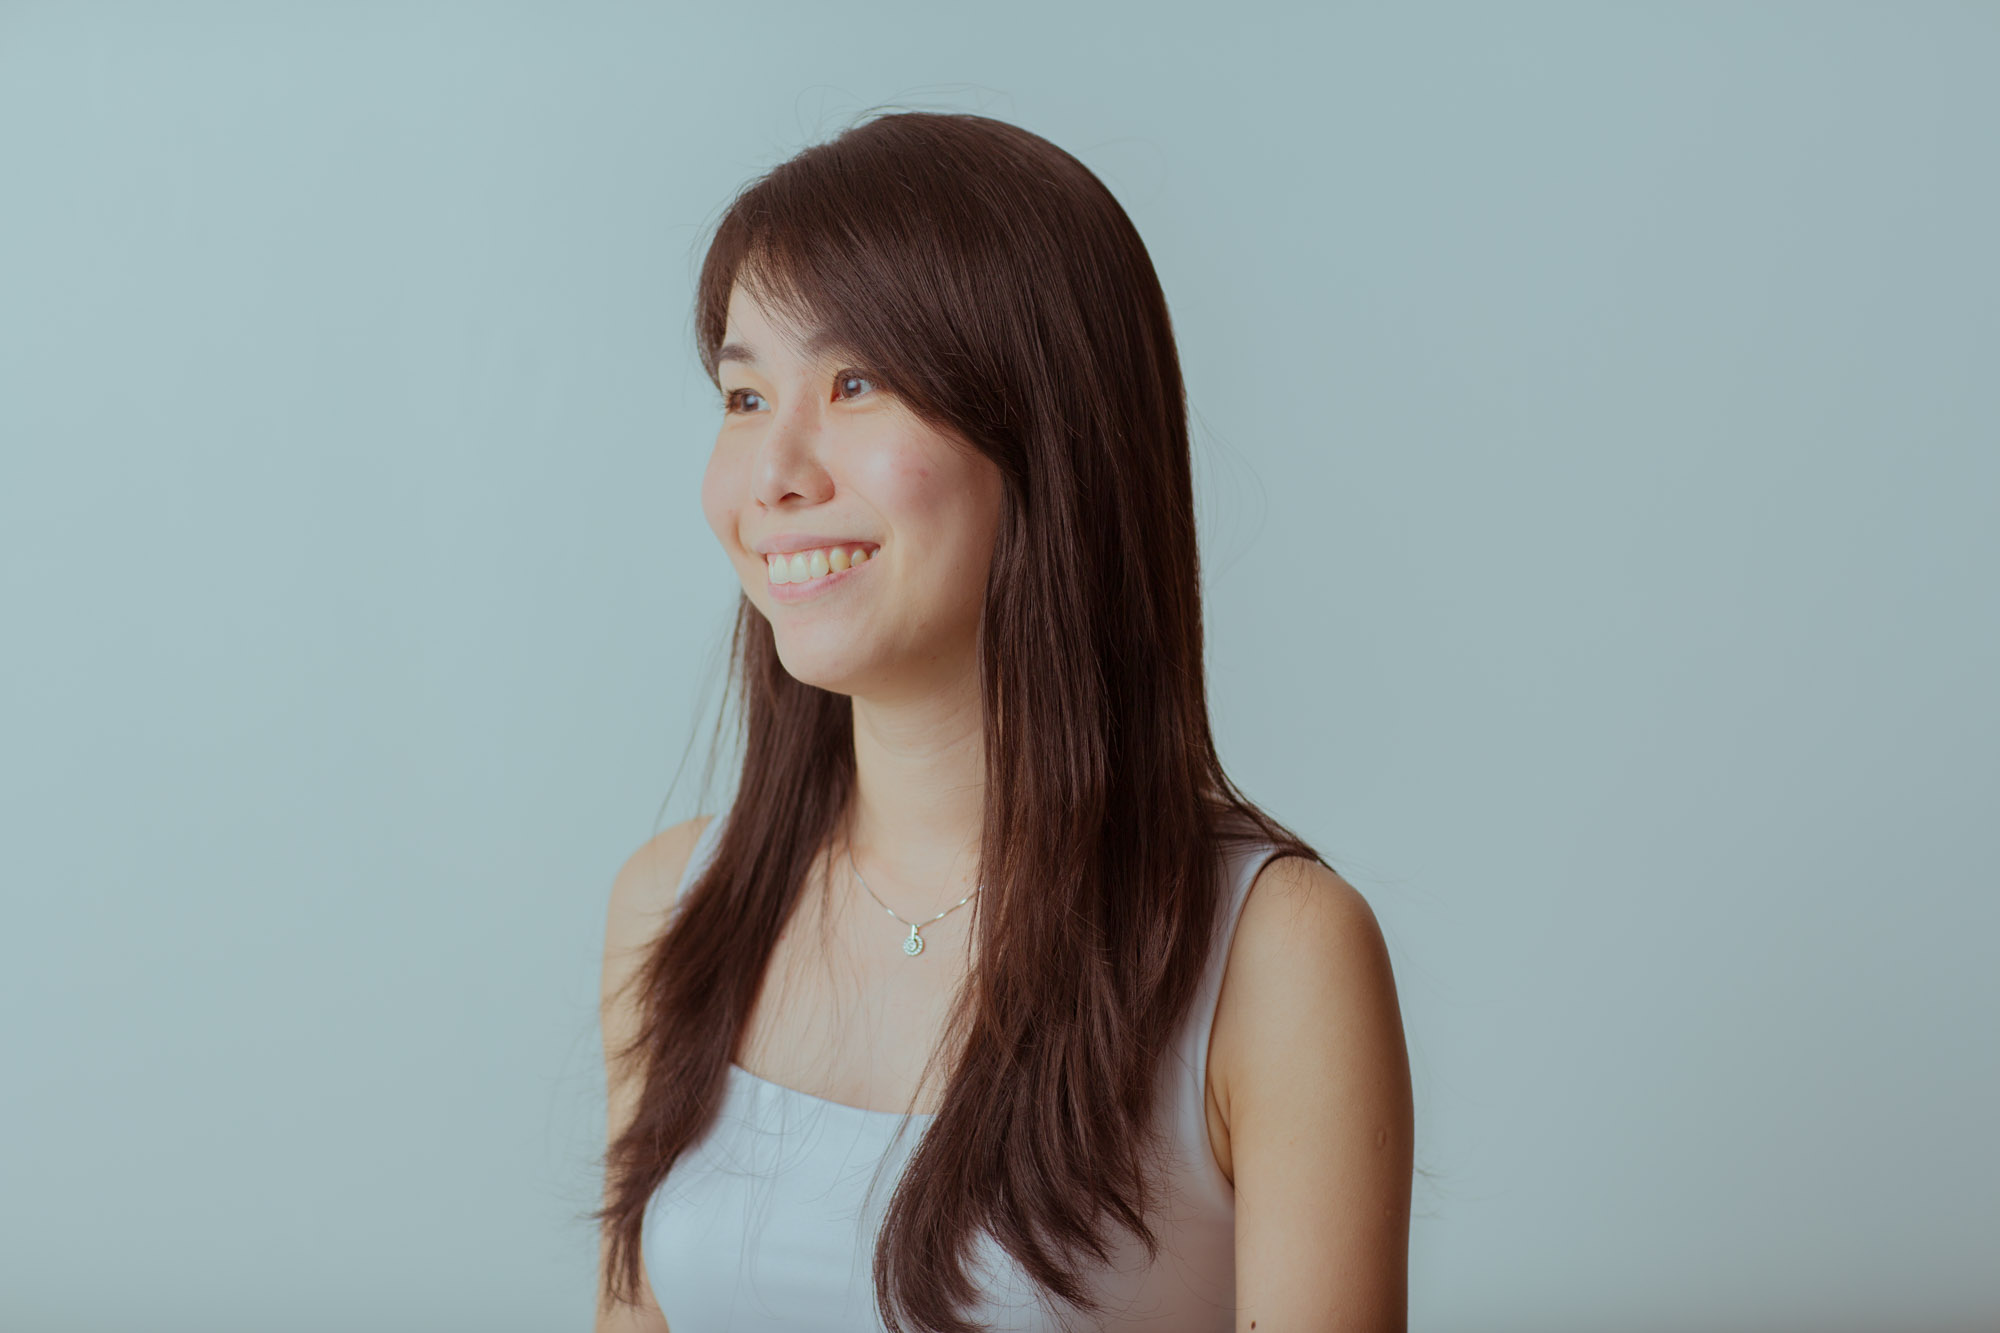 ISABELLE LEE XINYI